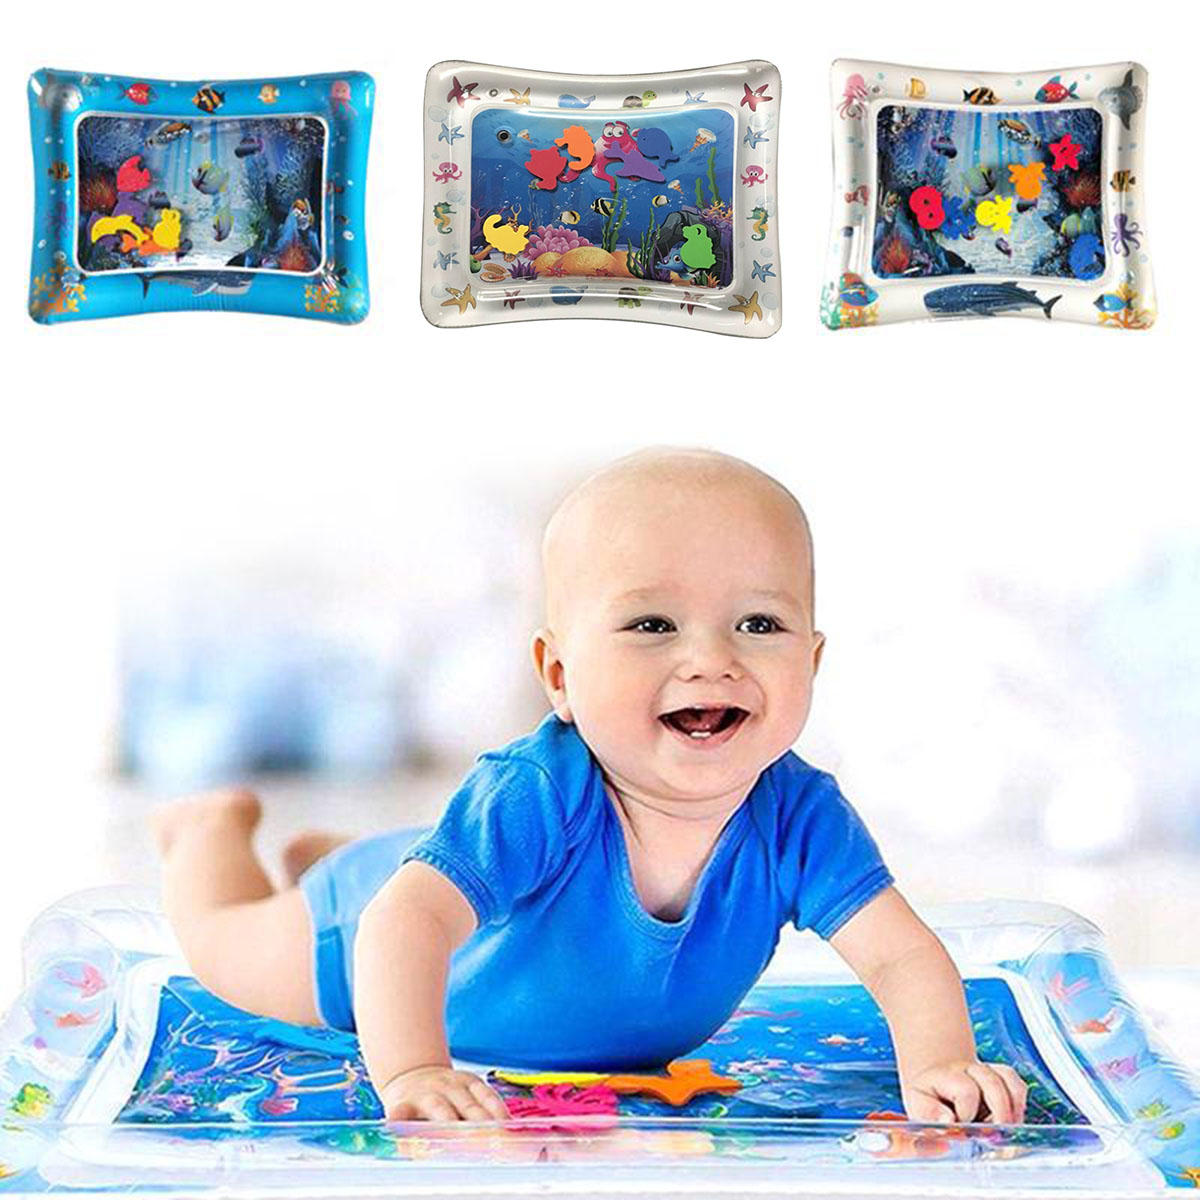 Free Shipping Baby Kids Water Play Mat Toys Inflatable Infant Tummy Time Toddler Activity Play Center Water Mat For Babies